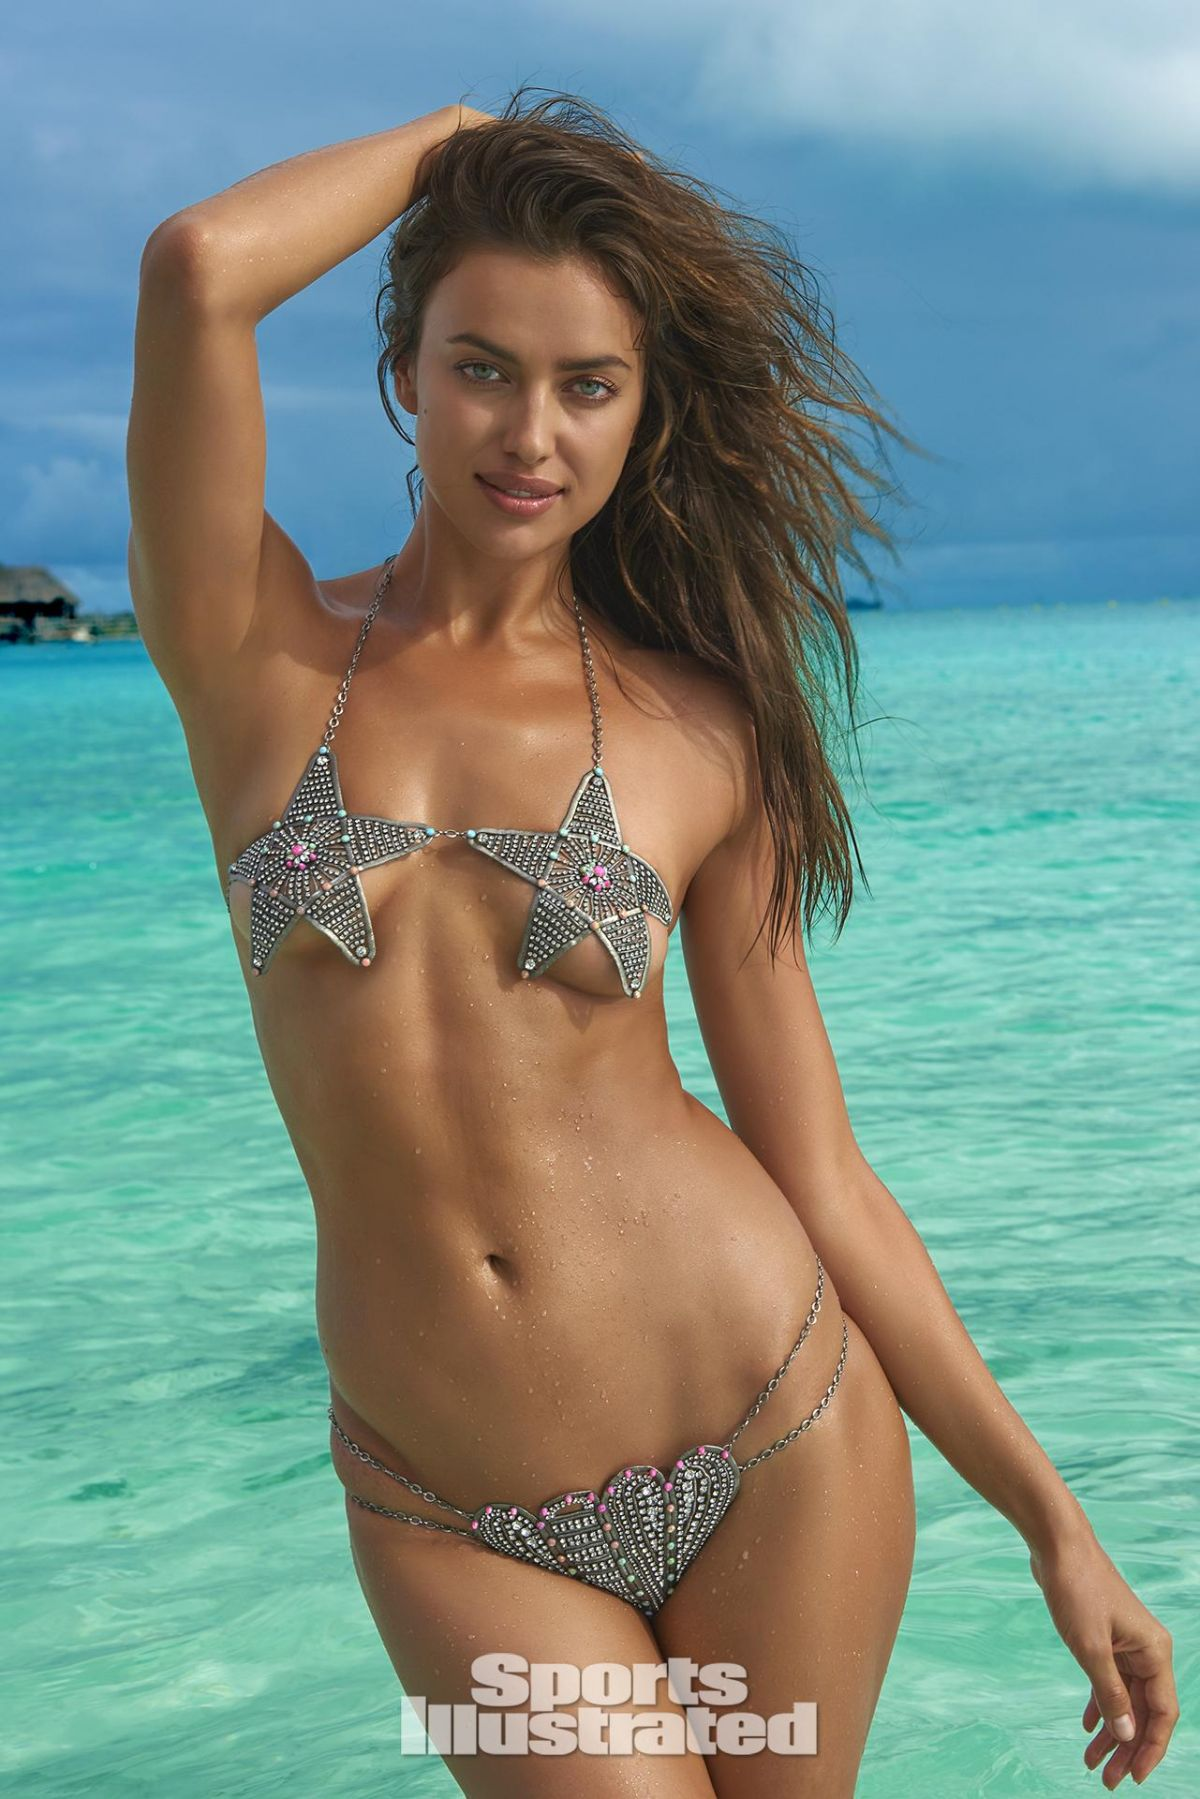 Sports Illustrated Swimsuit Irina Shayk | Foto Bugil 2017